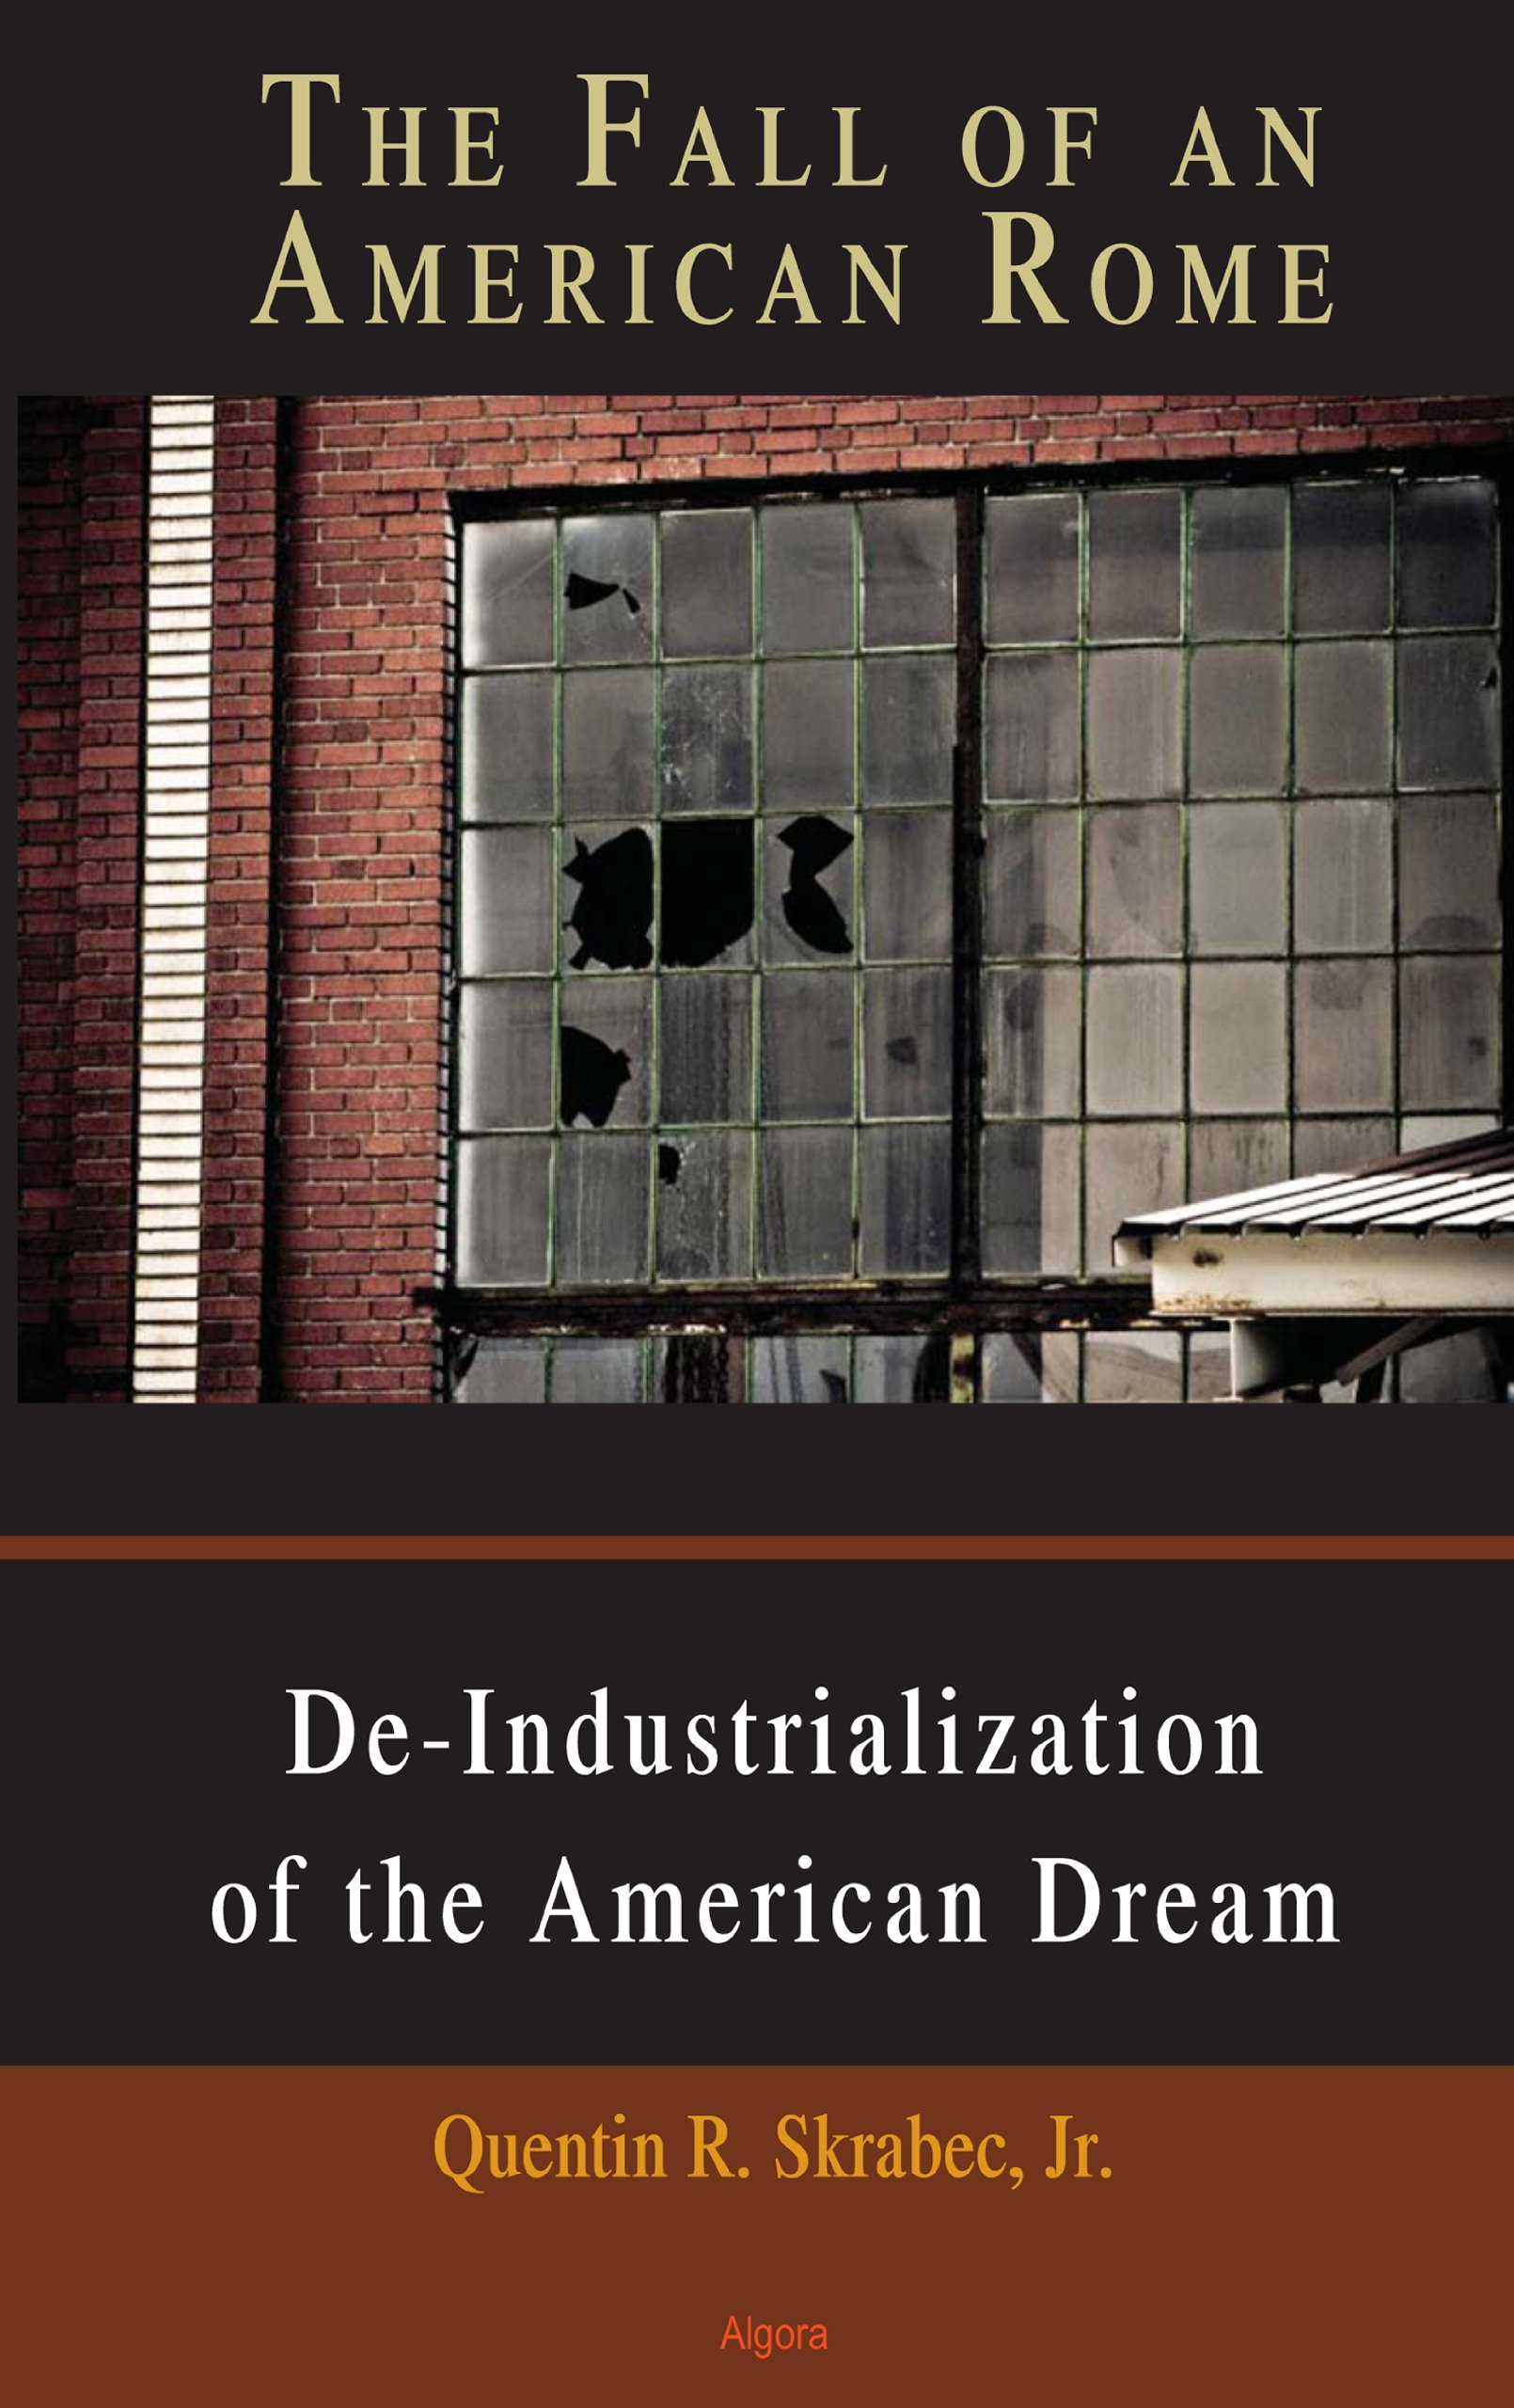 The Fall of an American Rome: De-Industrialization of the American Dream